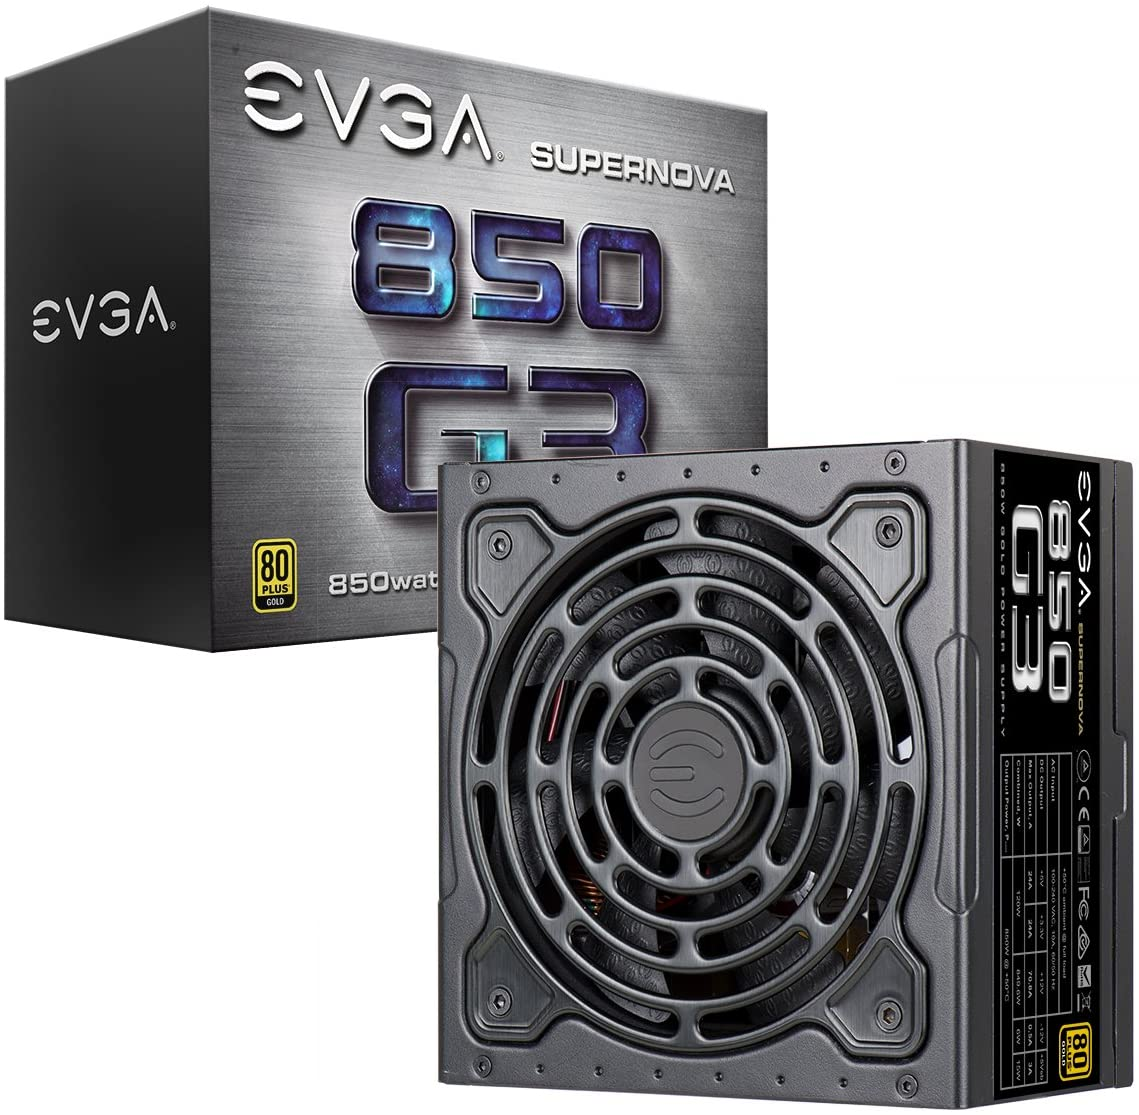 EVGA GeForce RTX 3080 XC3 ULTRA GAMING BACKORDER + EVGA SuperNOVA 850W PSU BUNDLE BACKORDER